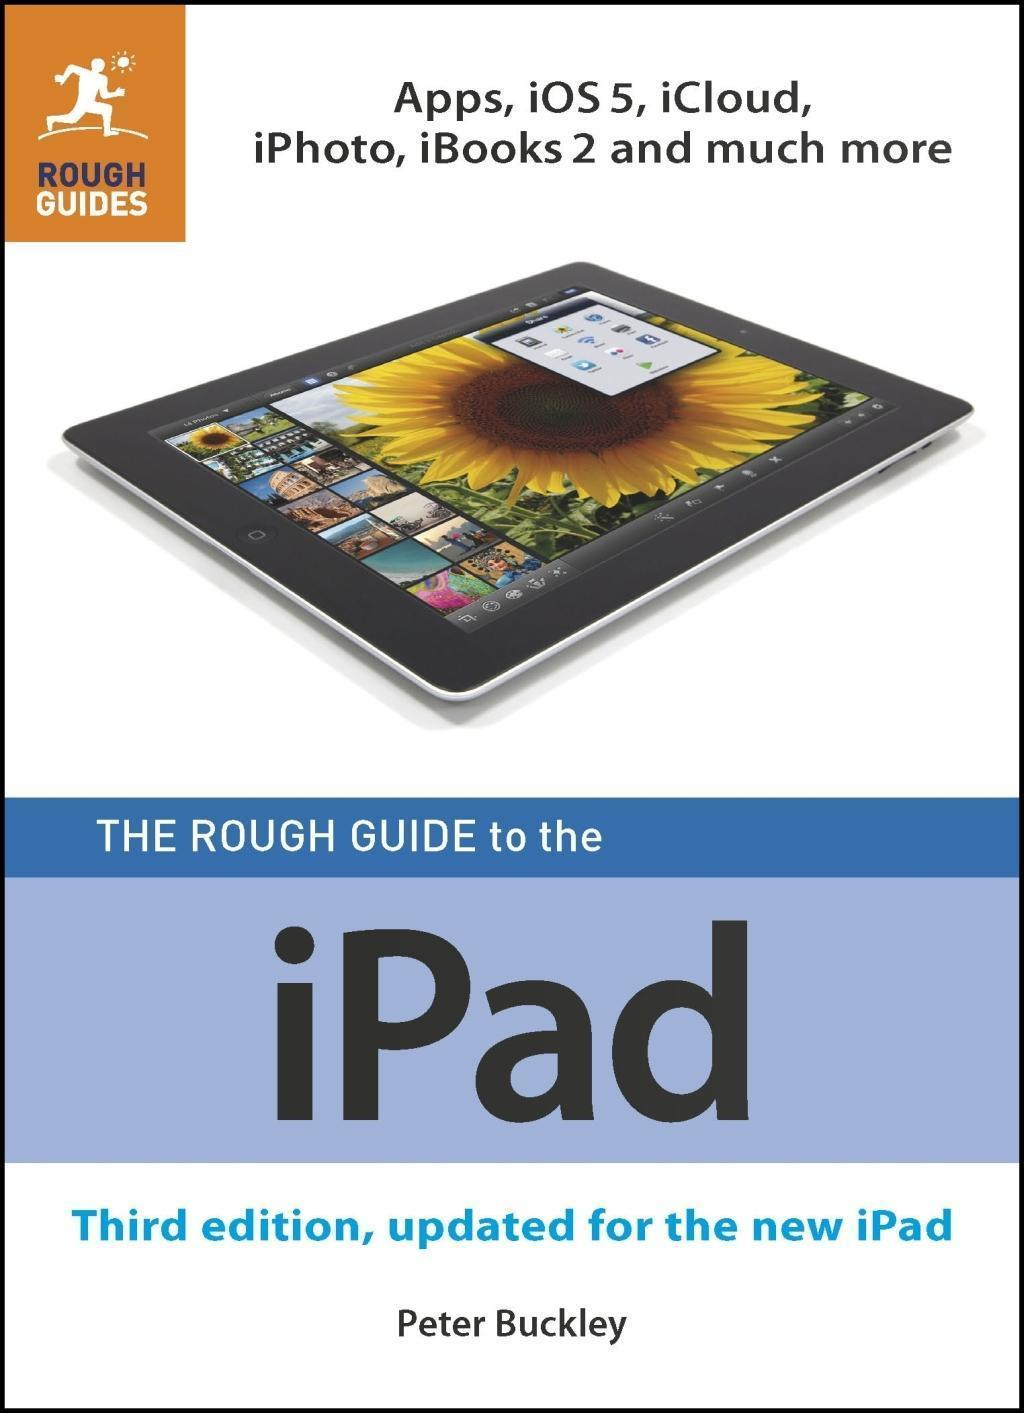 The Rough Guide to the iPad (3rd edition)